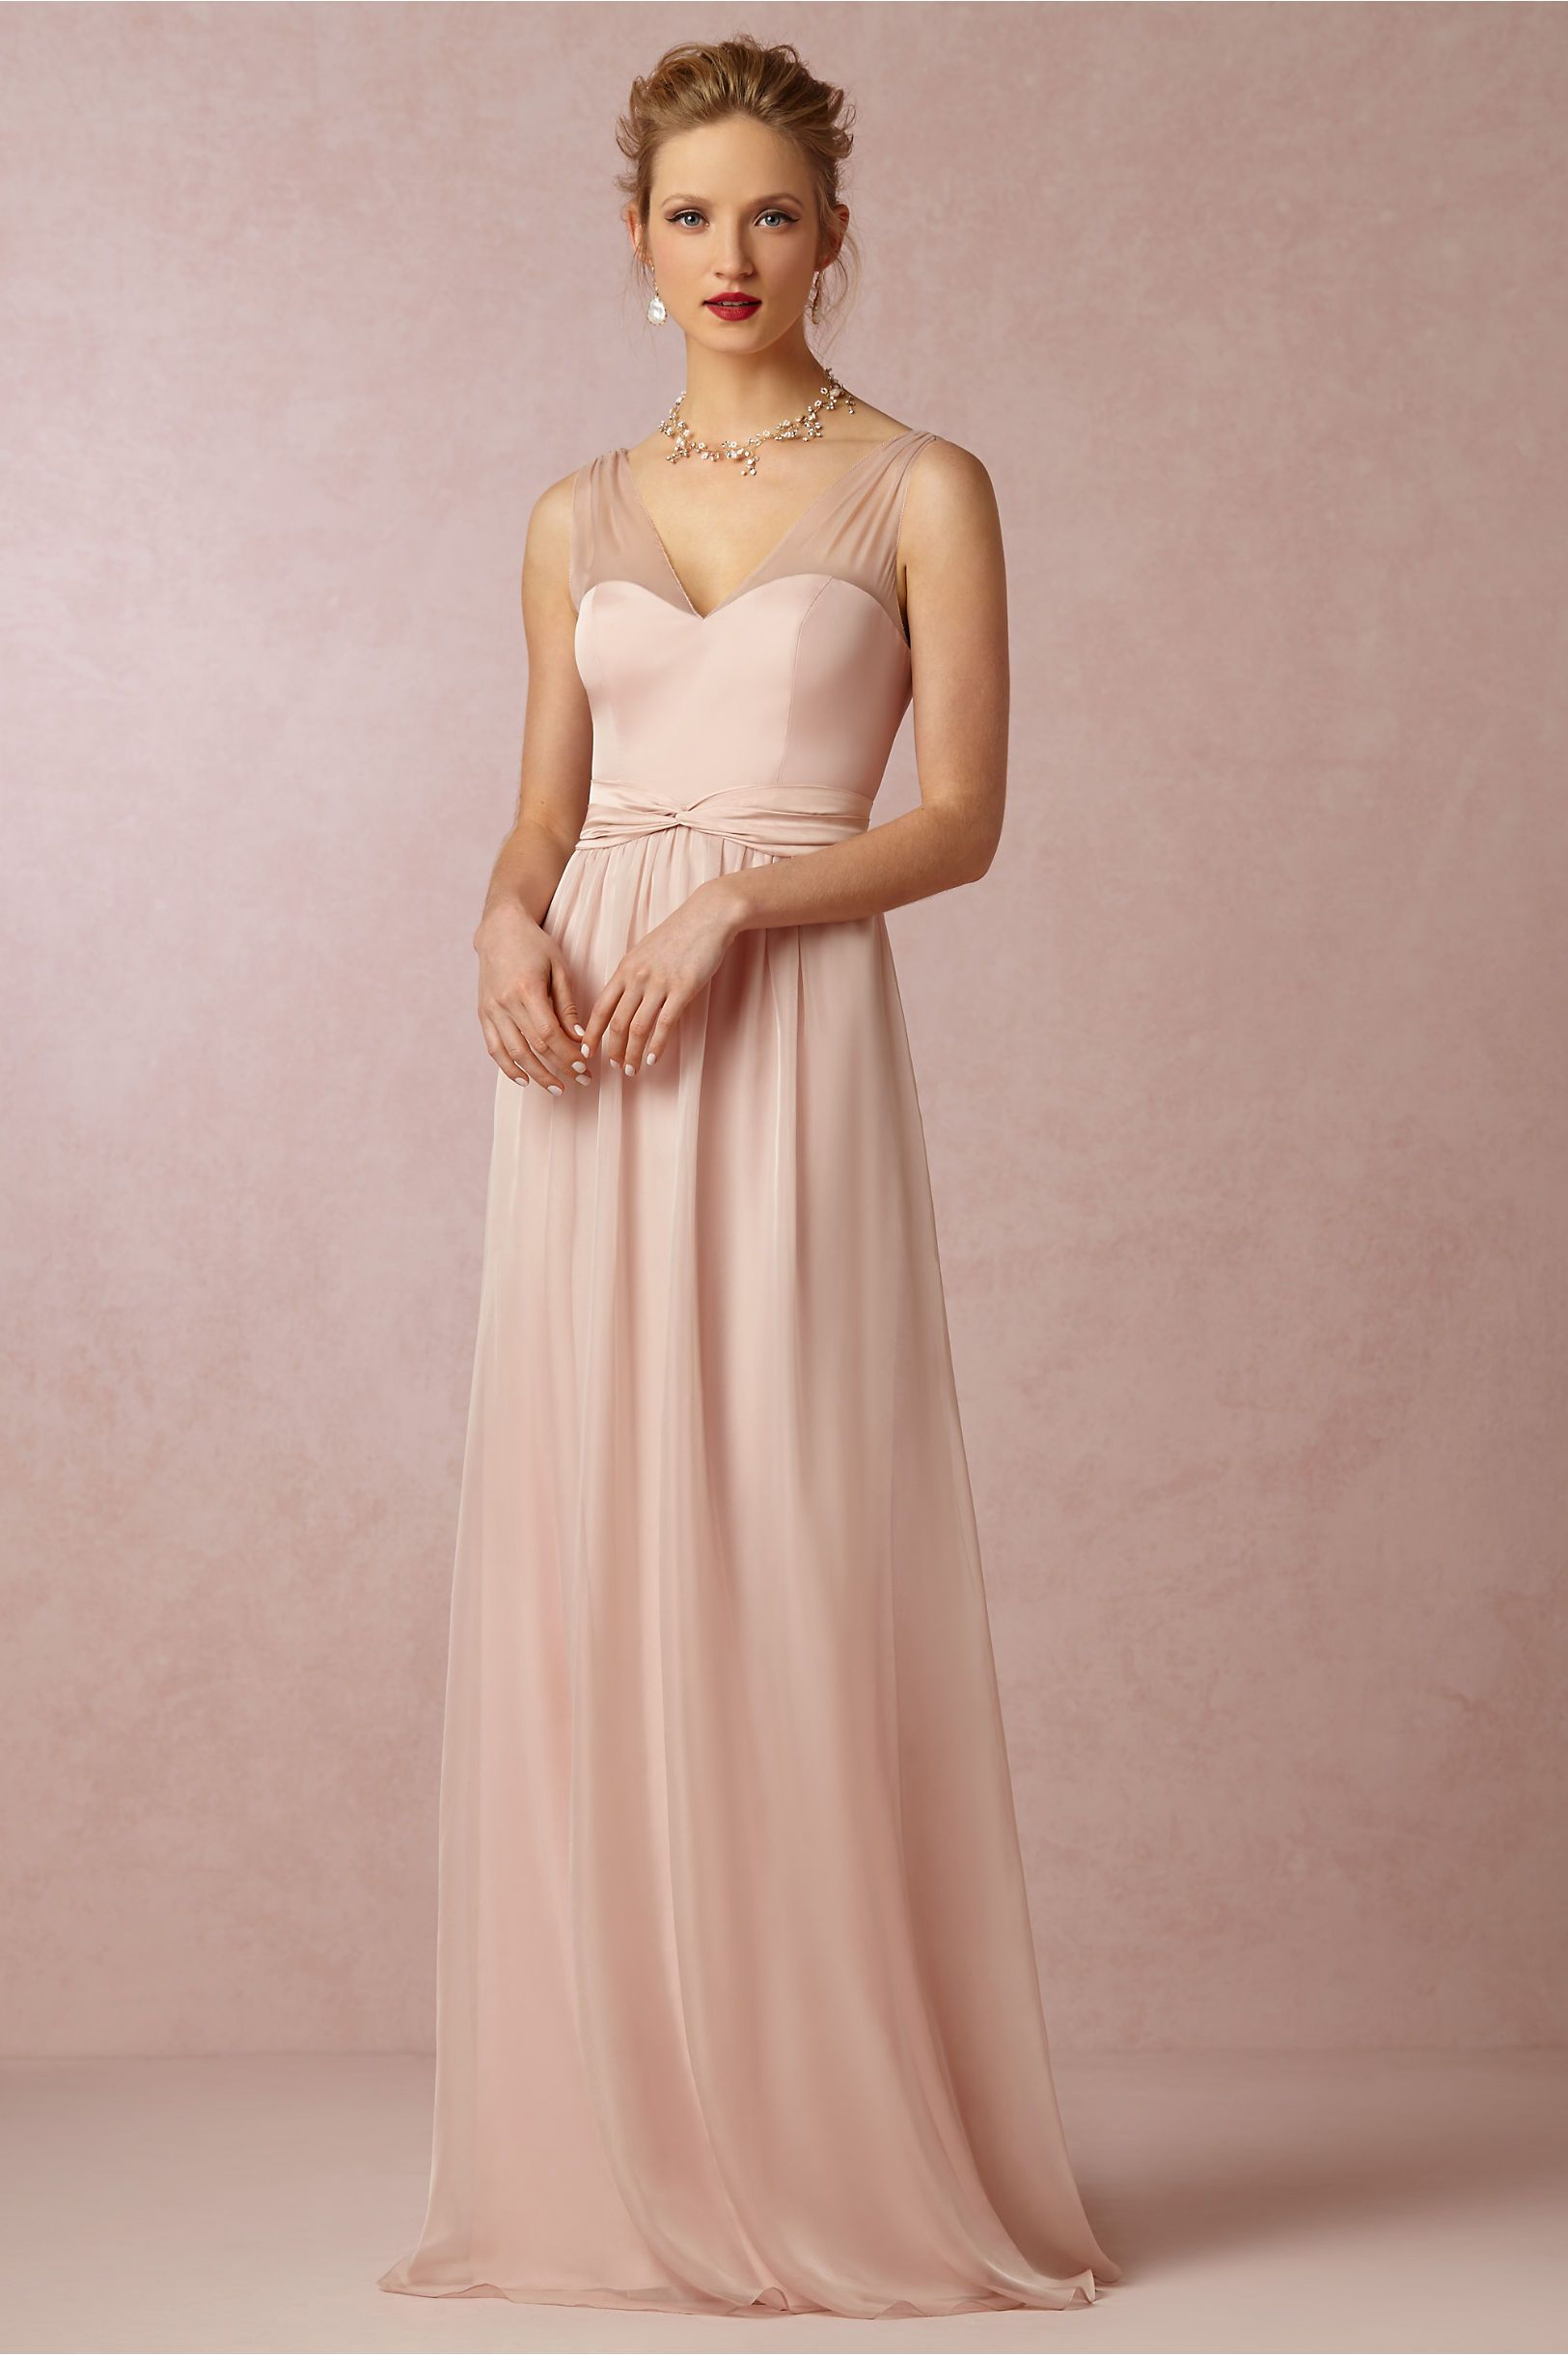 Josephine Dress in Sale Dresses at BHLDN | mandy | Pinterest ...